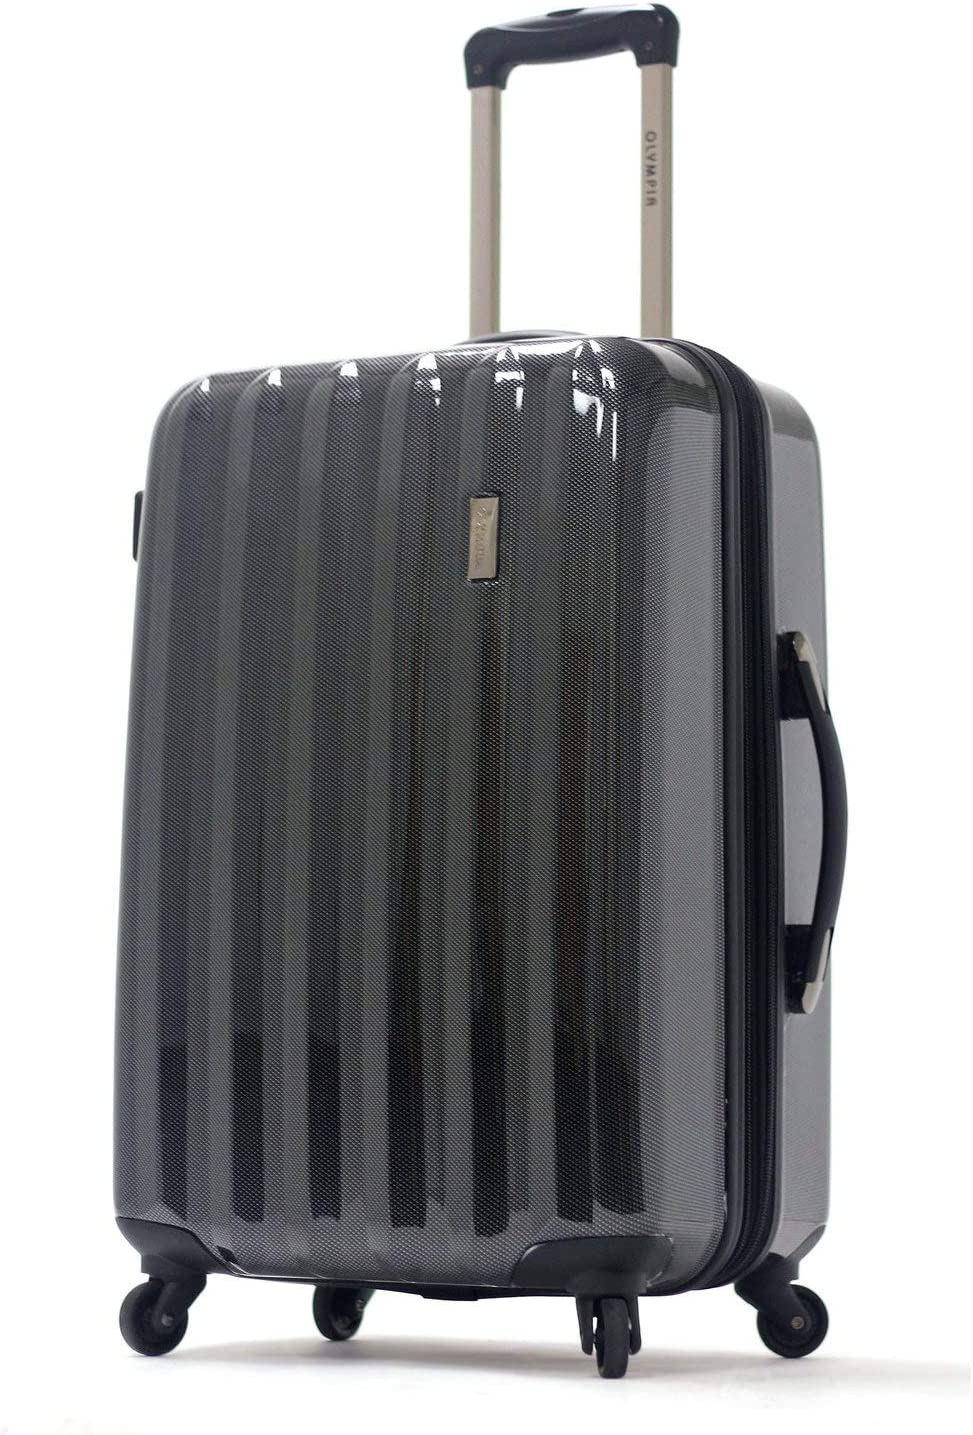 Olympia Titan 25 Mid-Size Expandable Hardcase Spinner Suitcase in Black